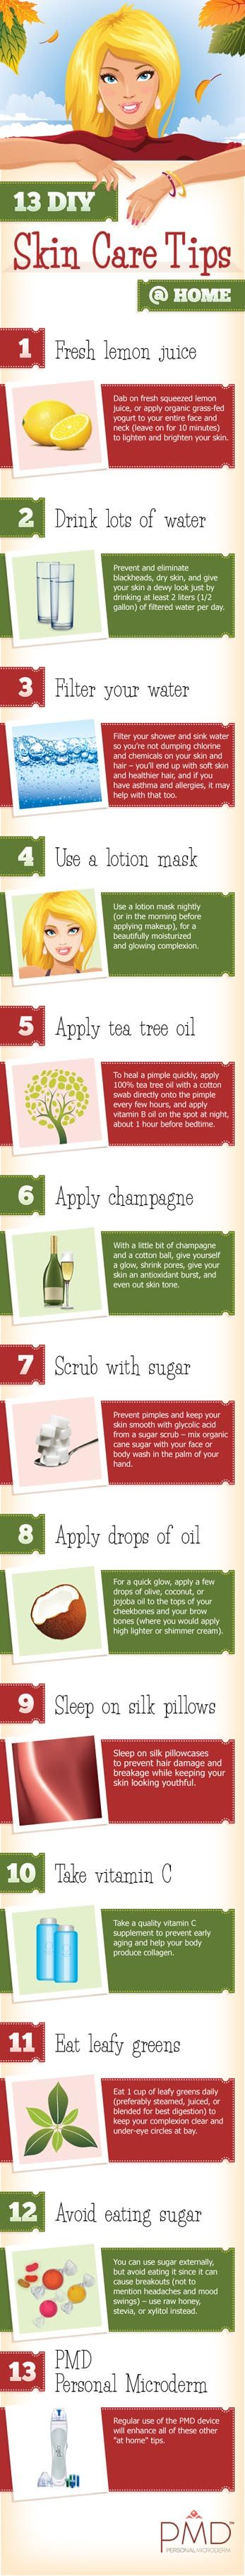 13 DIY Skin Care Tips Home! Great for Fall and these